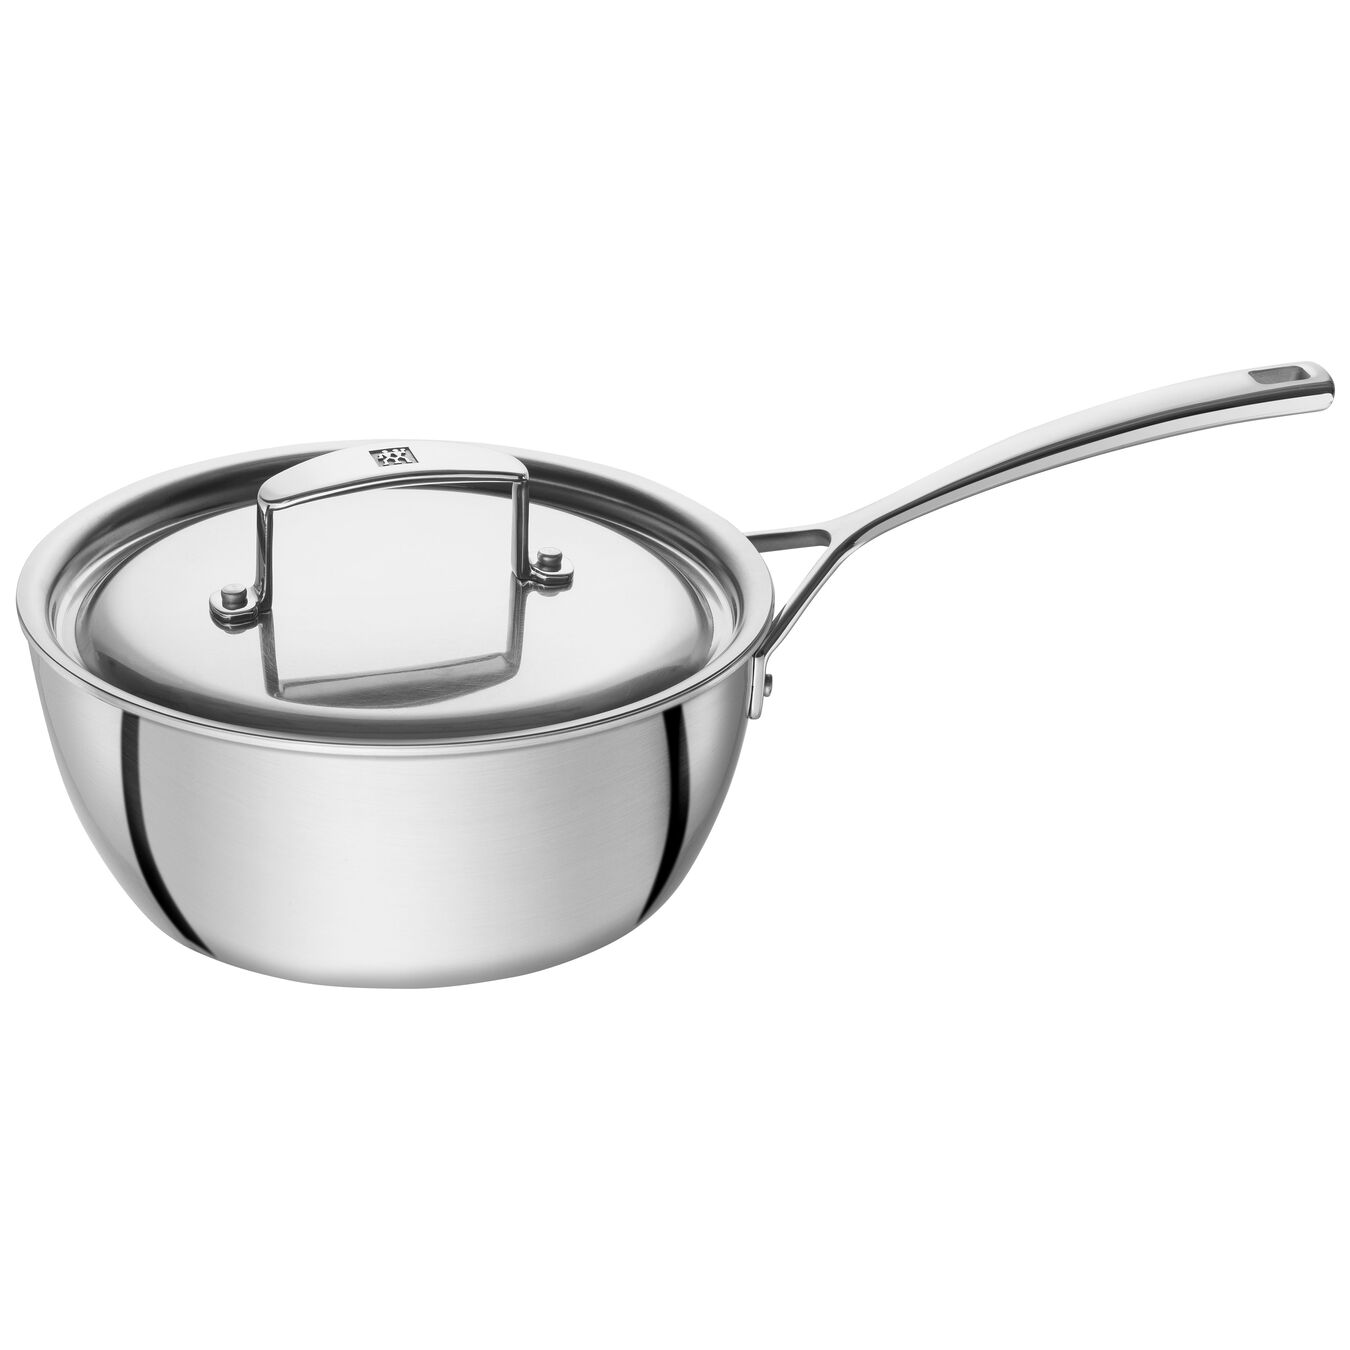 5 Ply, 18/10 Stainless Steel, 1.75 qt, Sauteuse,,large 1